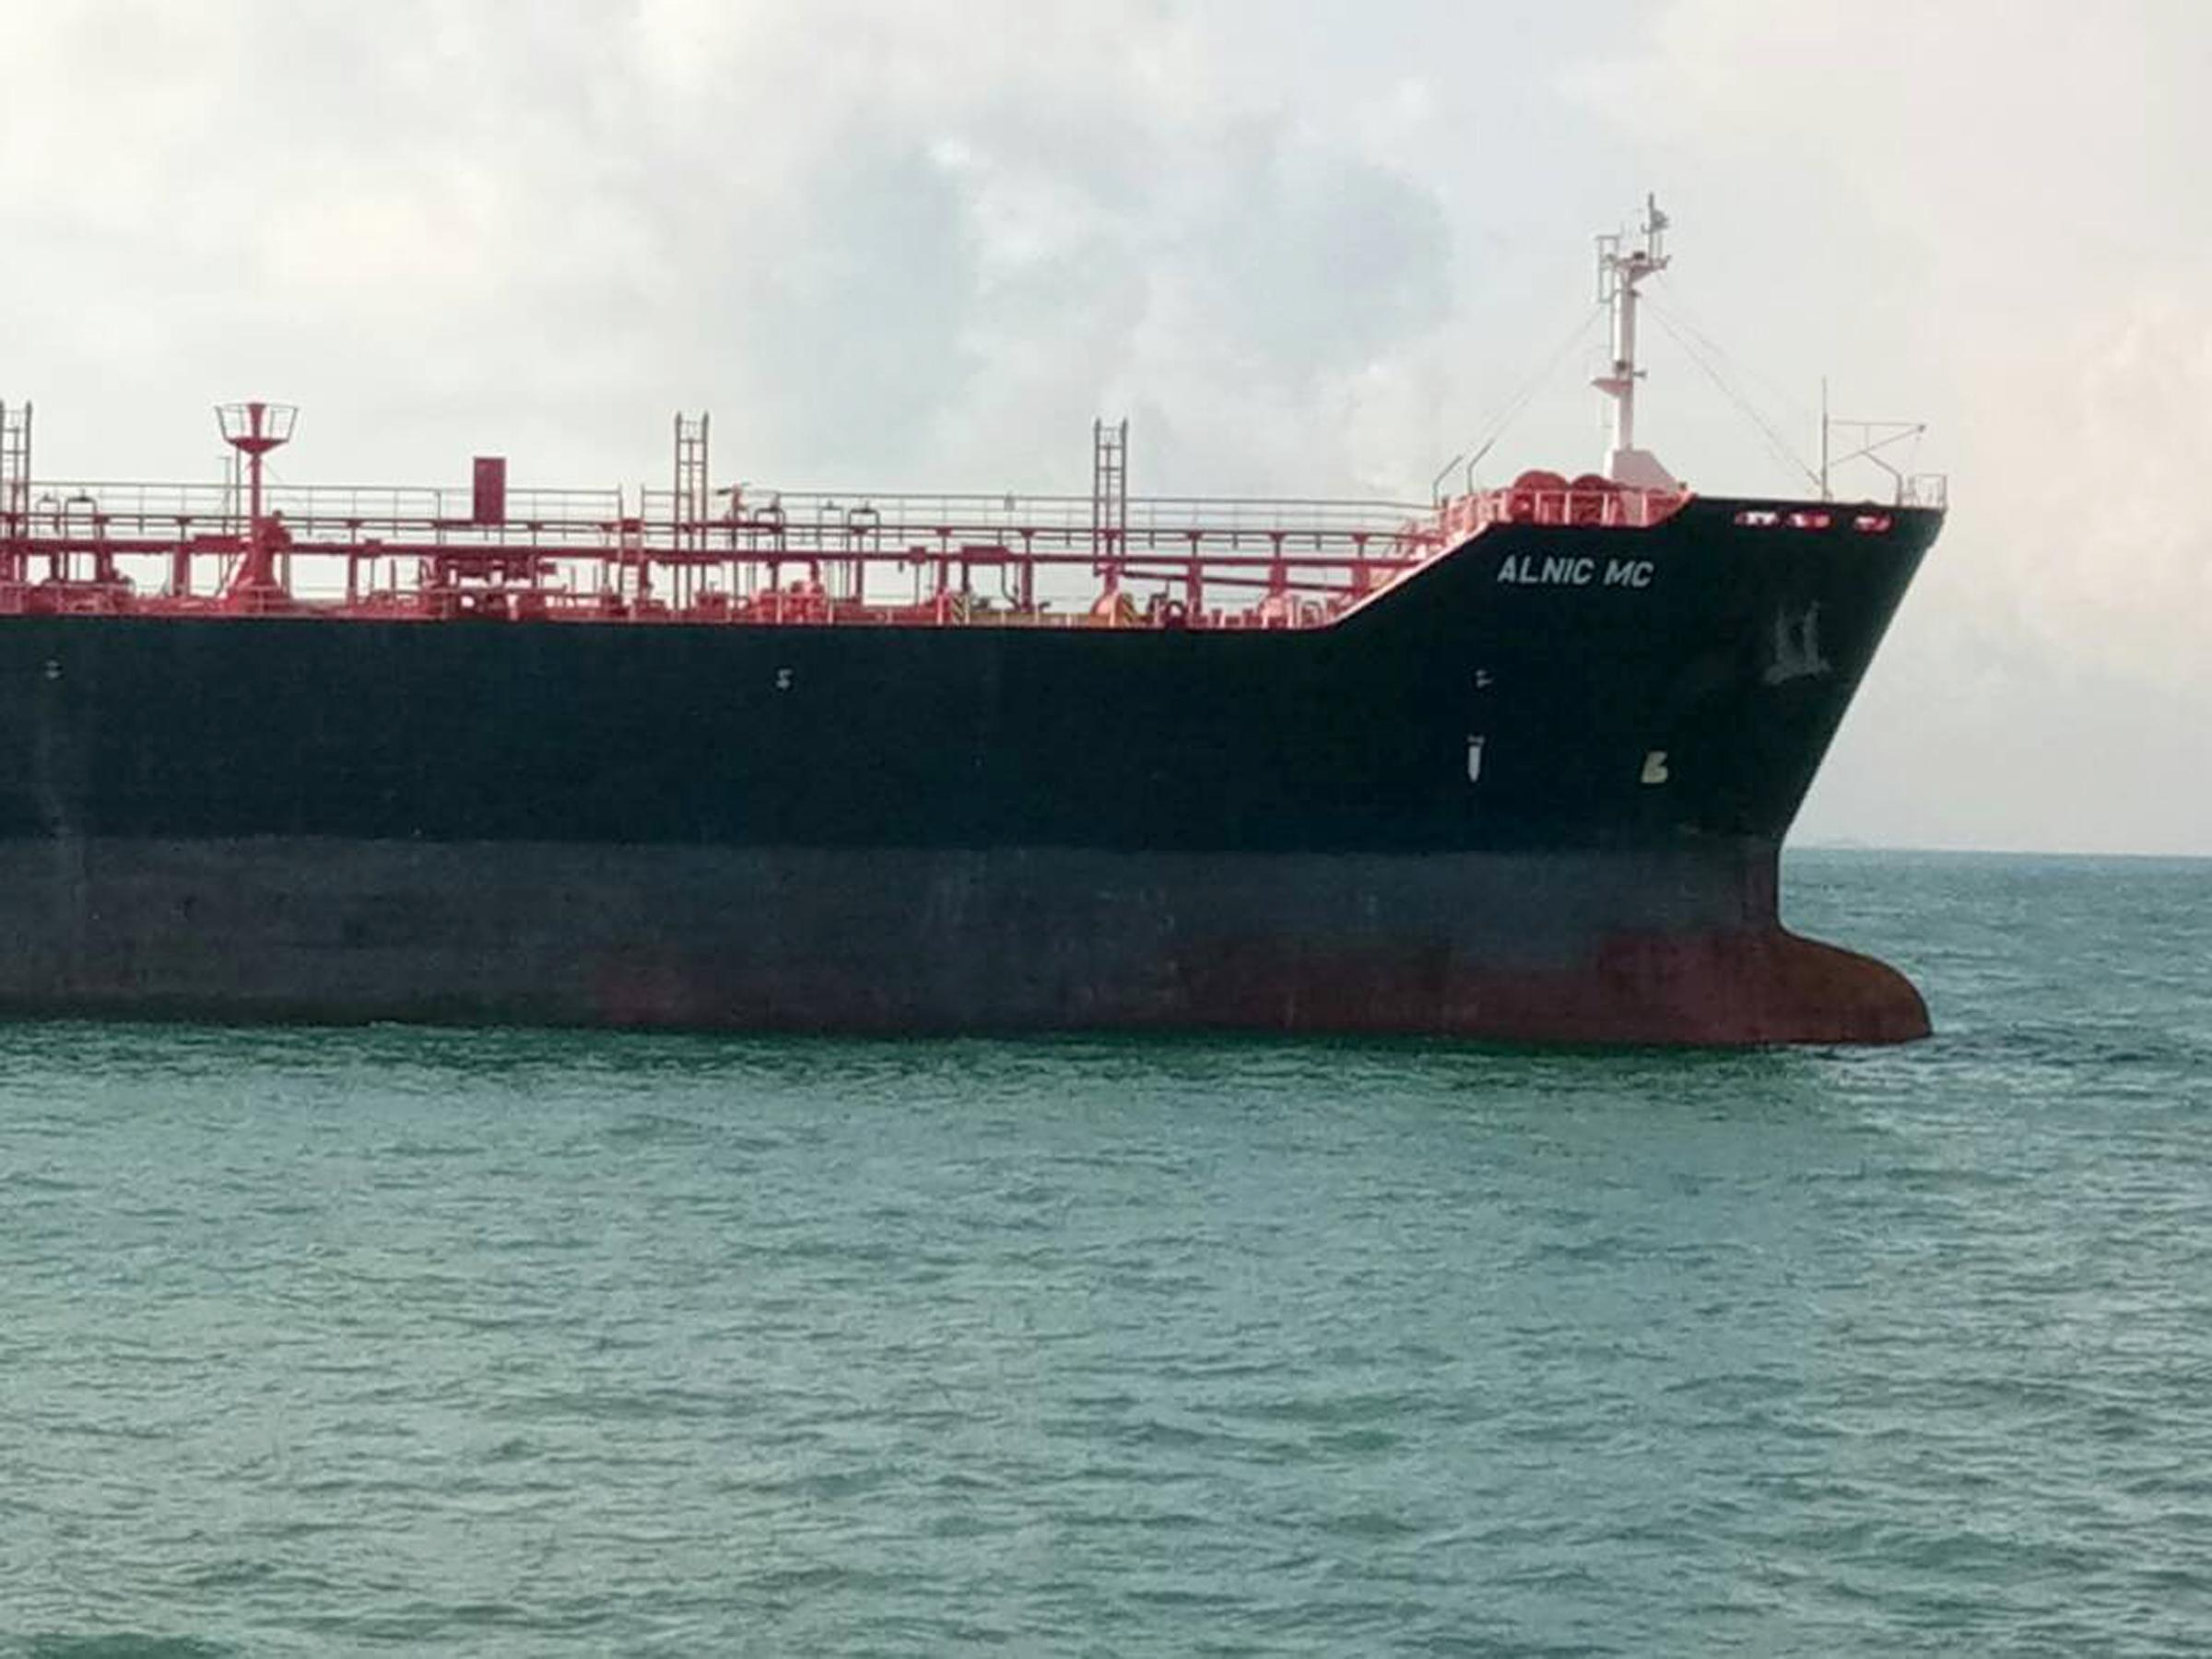 This photo released by the Royal Malaysian Navy shows the oil and chemical tanker Alnic MC is seen after a collision off Johor, Malaysia, Monday, Aug. 21, 2017. A number of U.S. sailors were missing after a collision between the USS John S. McCain and the tanker early Monday east of Singapore, the second accident involving a ship from the Navy's 7th Fleet in the Pacific in two months. (Royal Malaysian Navy via AP)